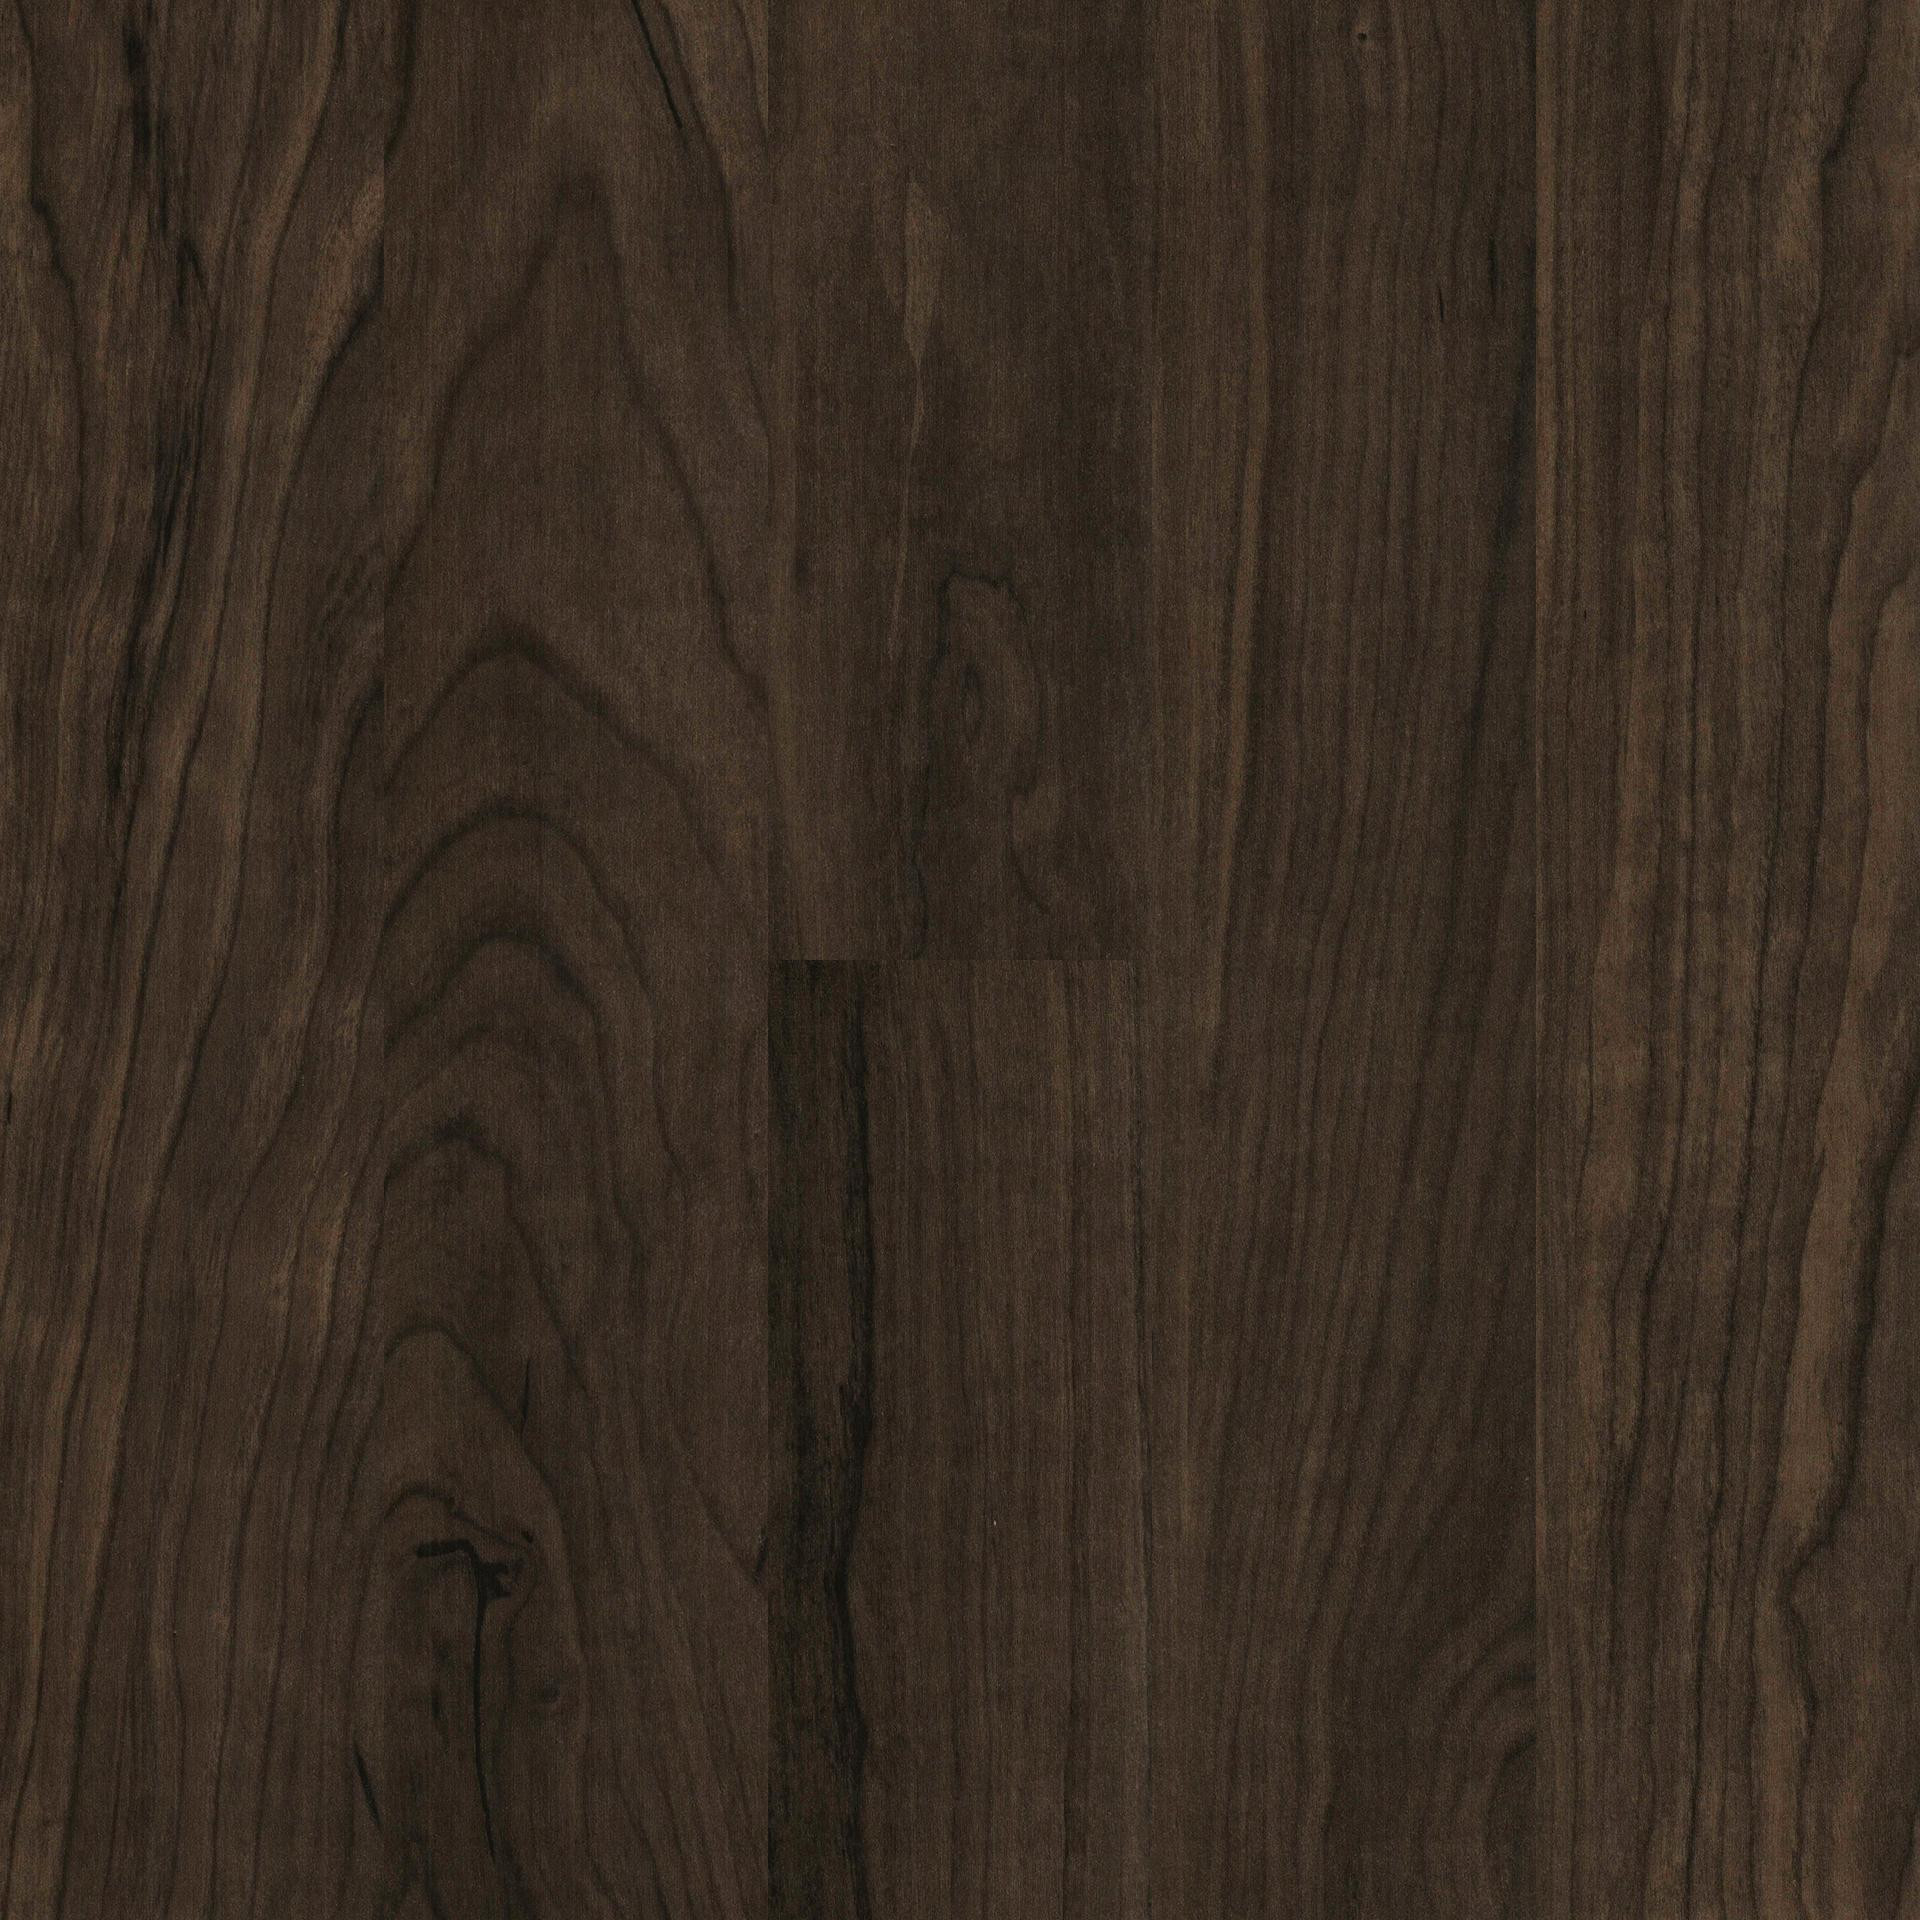 mohawk hardwood and laminate floor cleaner of ivc moduleo horizon chapel hill oak click together luxury vinyl plank intended for file 439 33